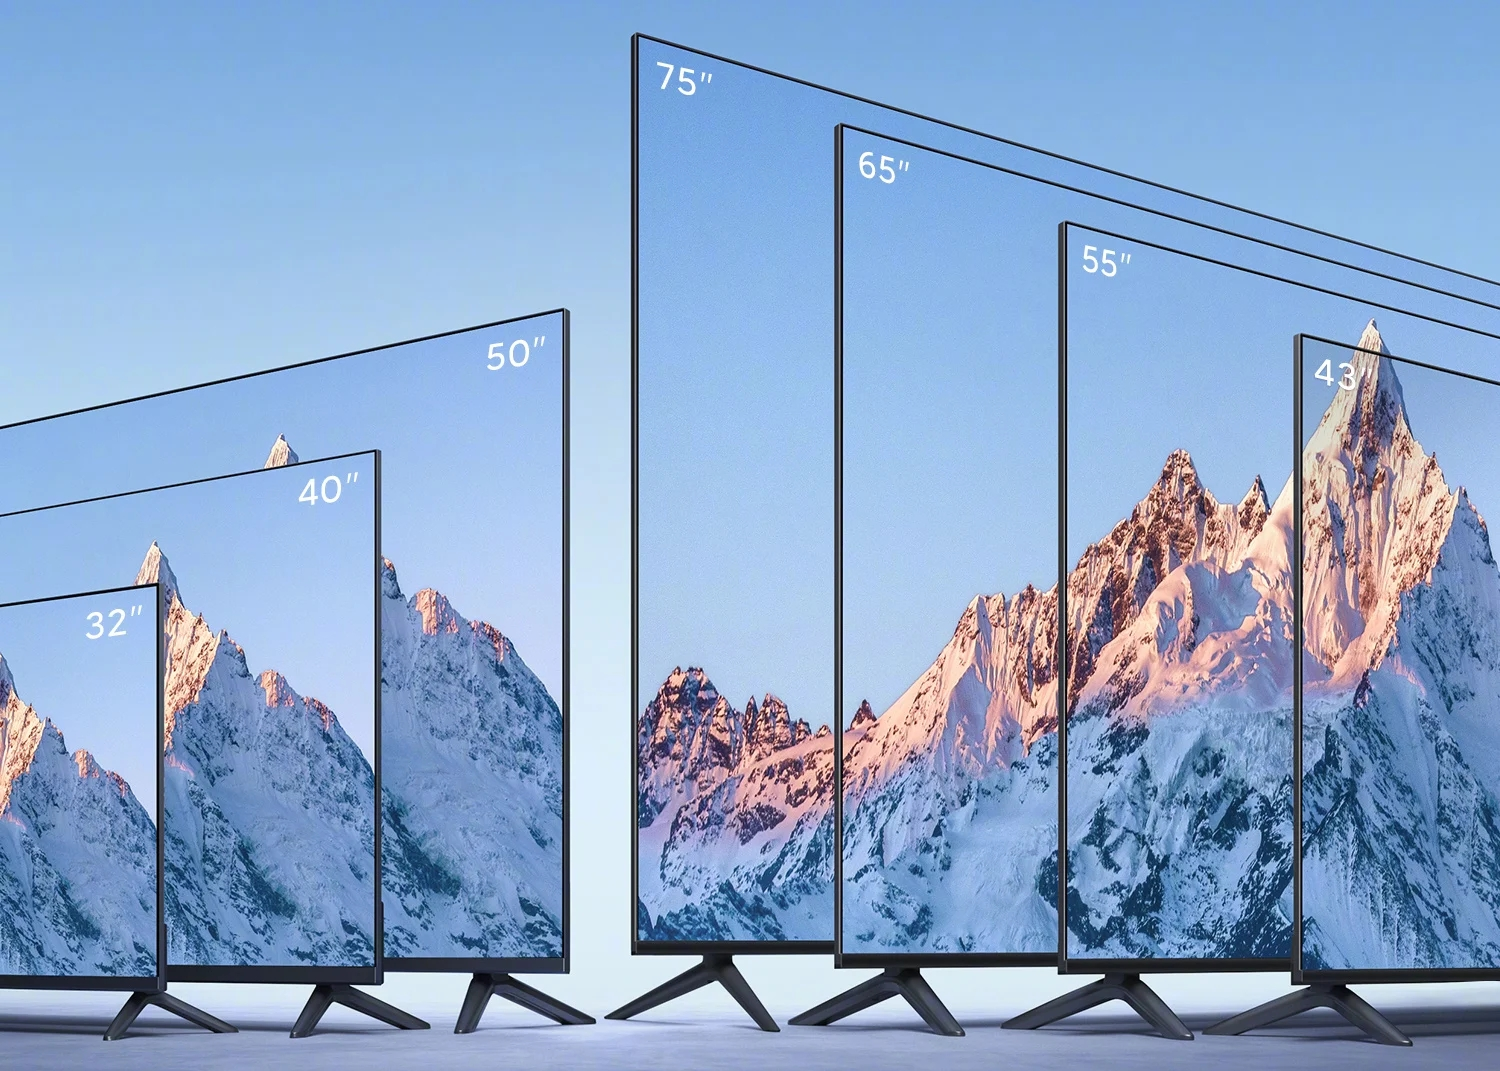 The Mi TV EA 2022 series by Xiaomi